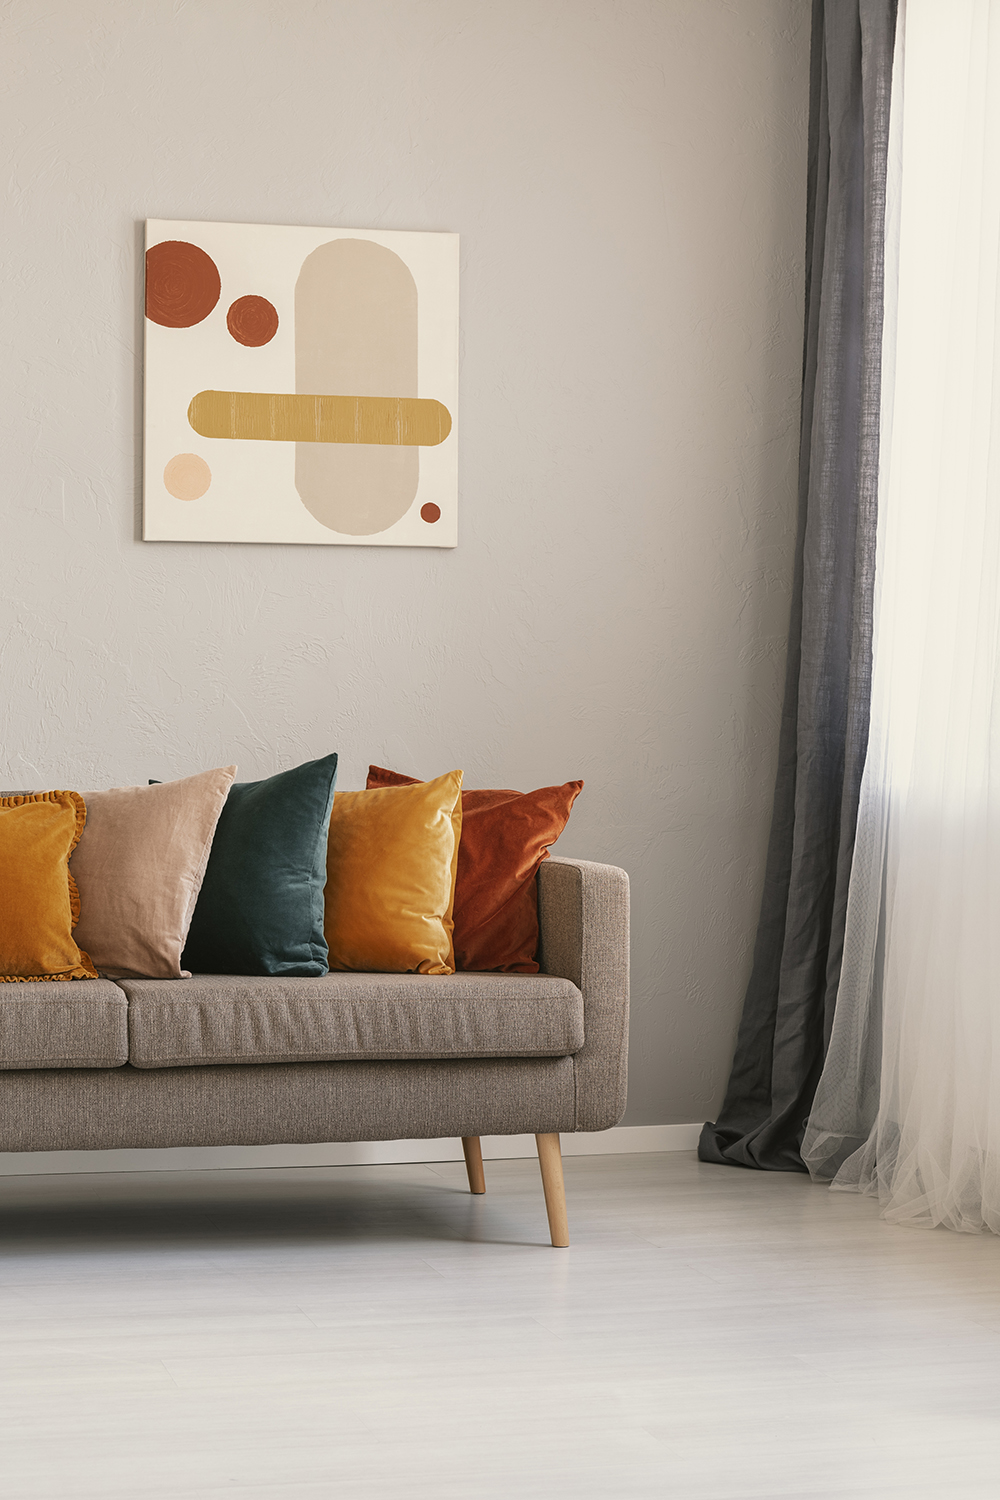 Abstract painting on beige wall above brown sofa with colorful pillows